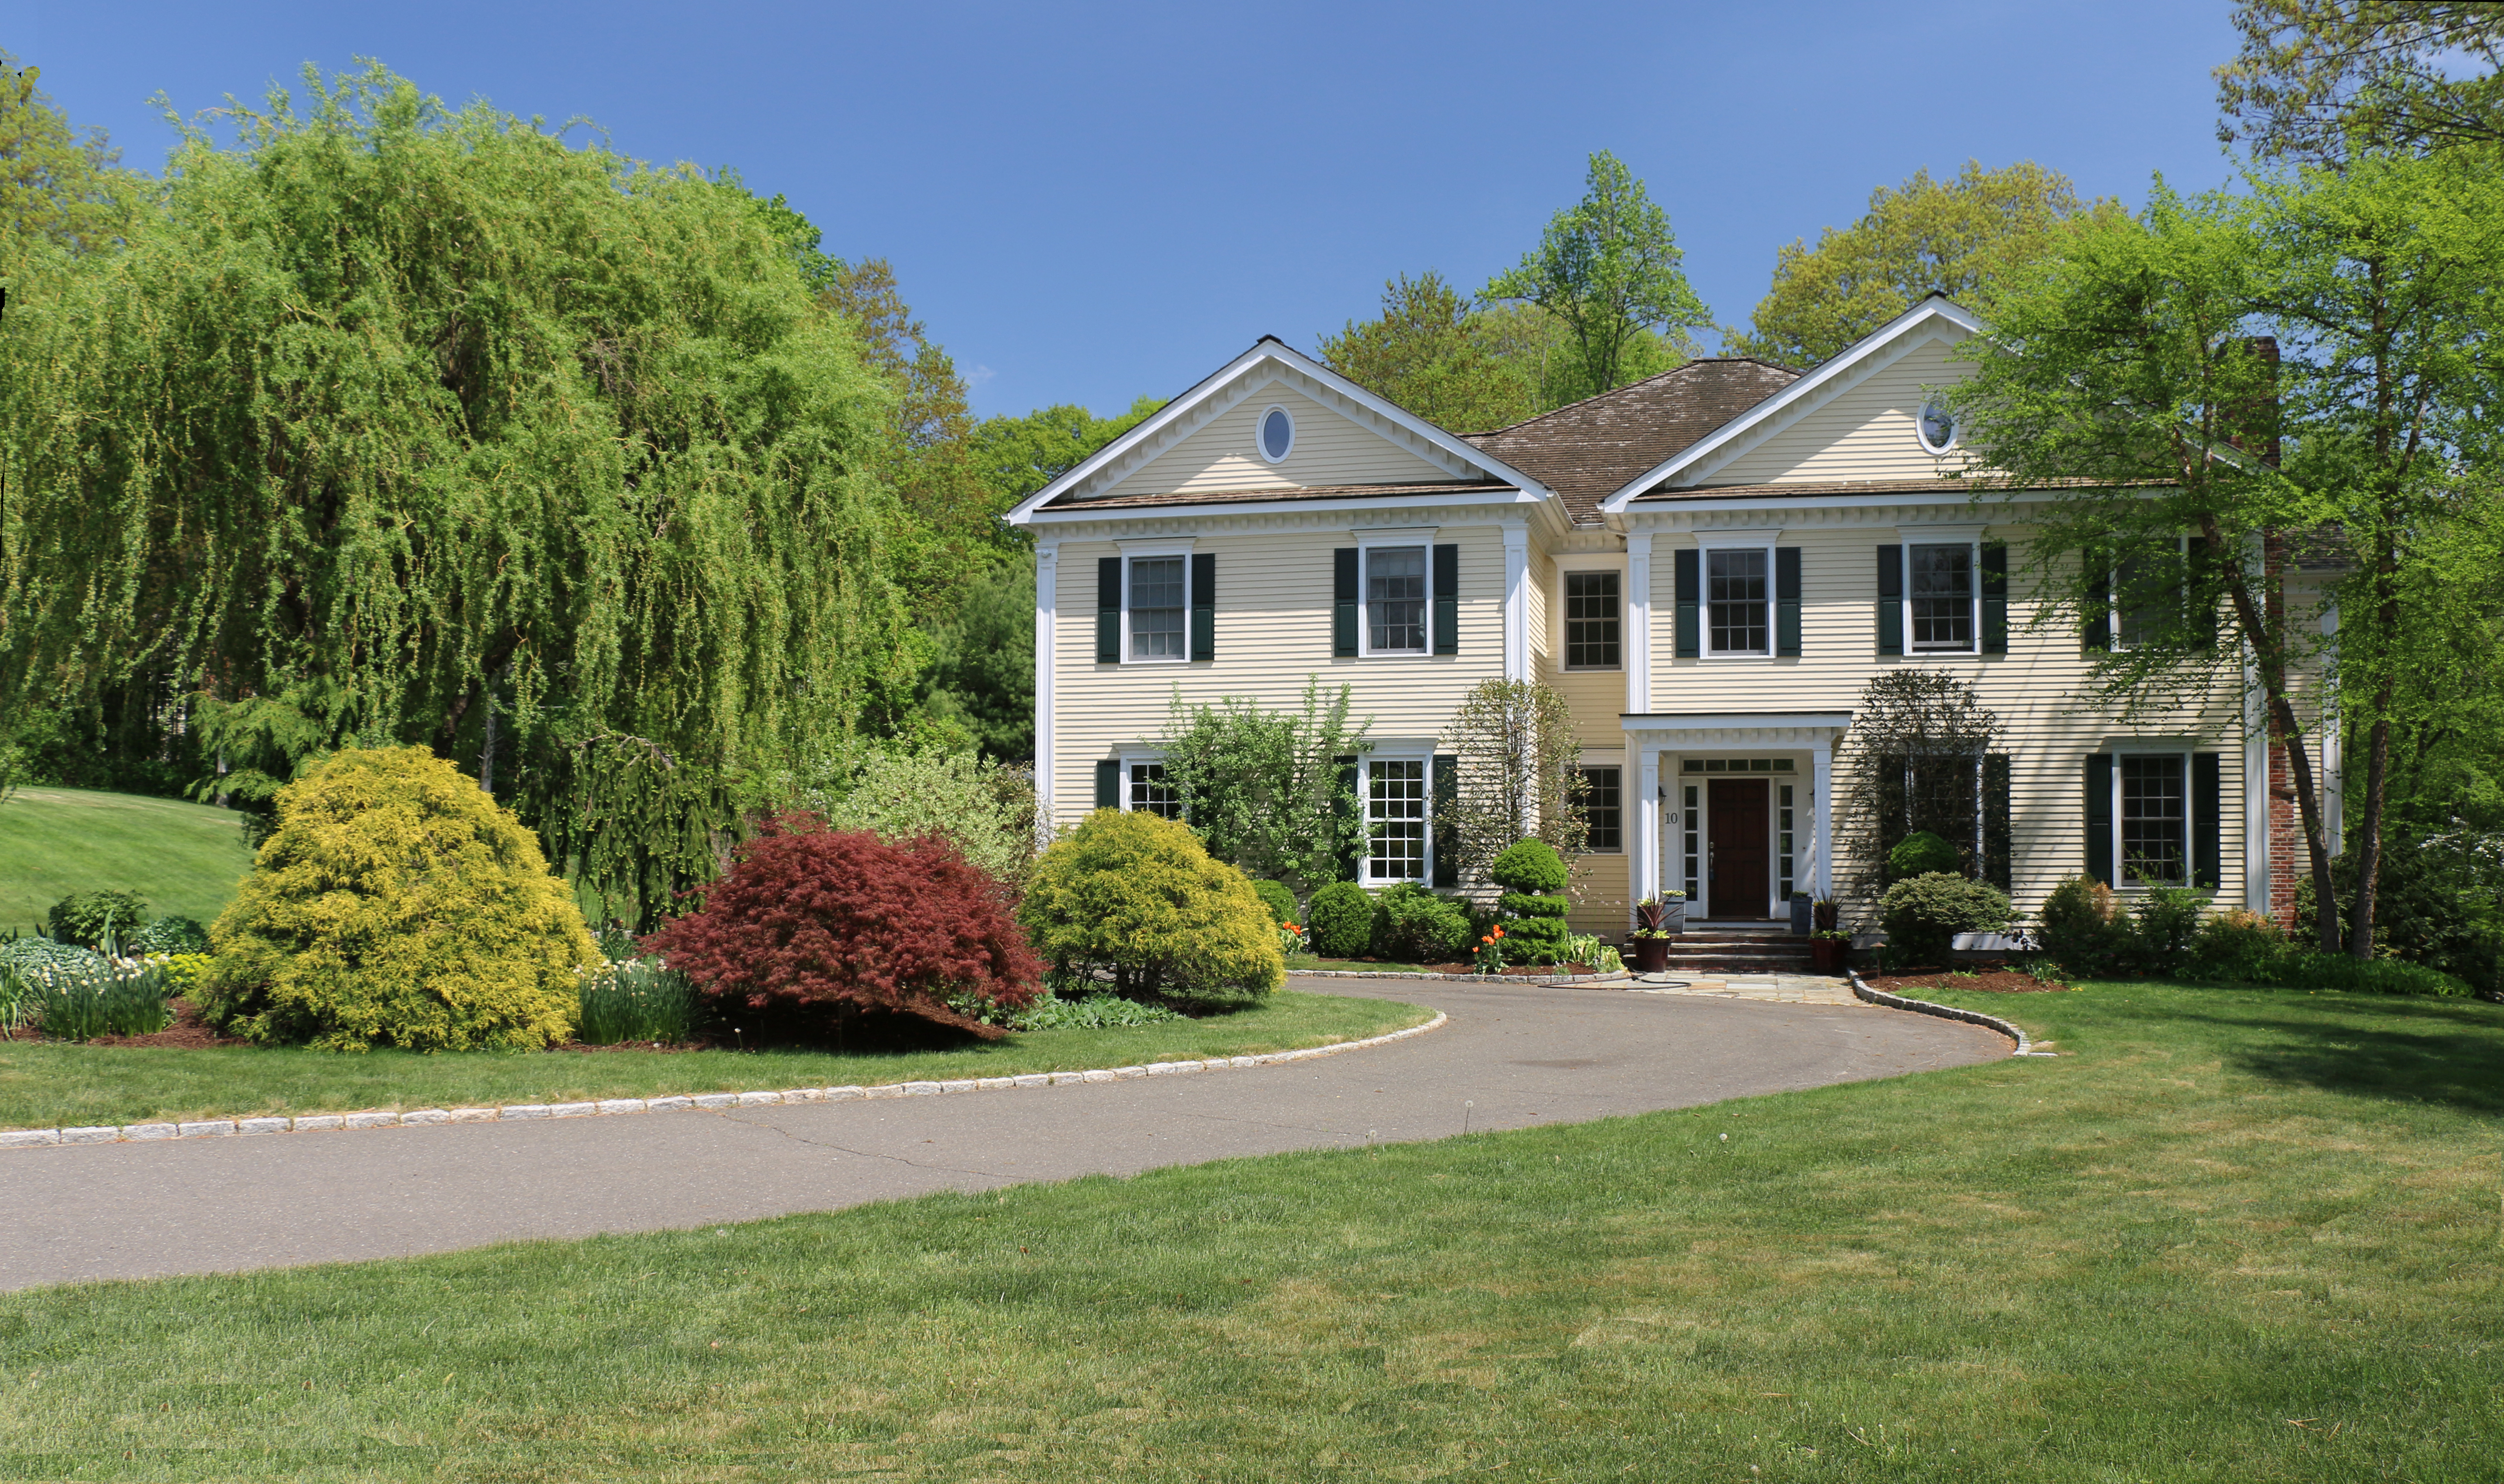 Single Family Home for Sale at Unique, Dramatic, Elegant and Eclectic Home 10 Brandon Circle Wilton, Connecticut 06897 United States